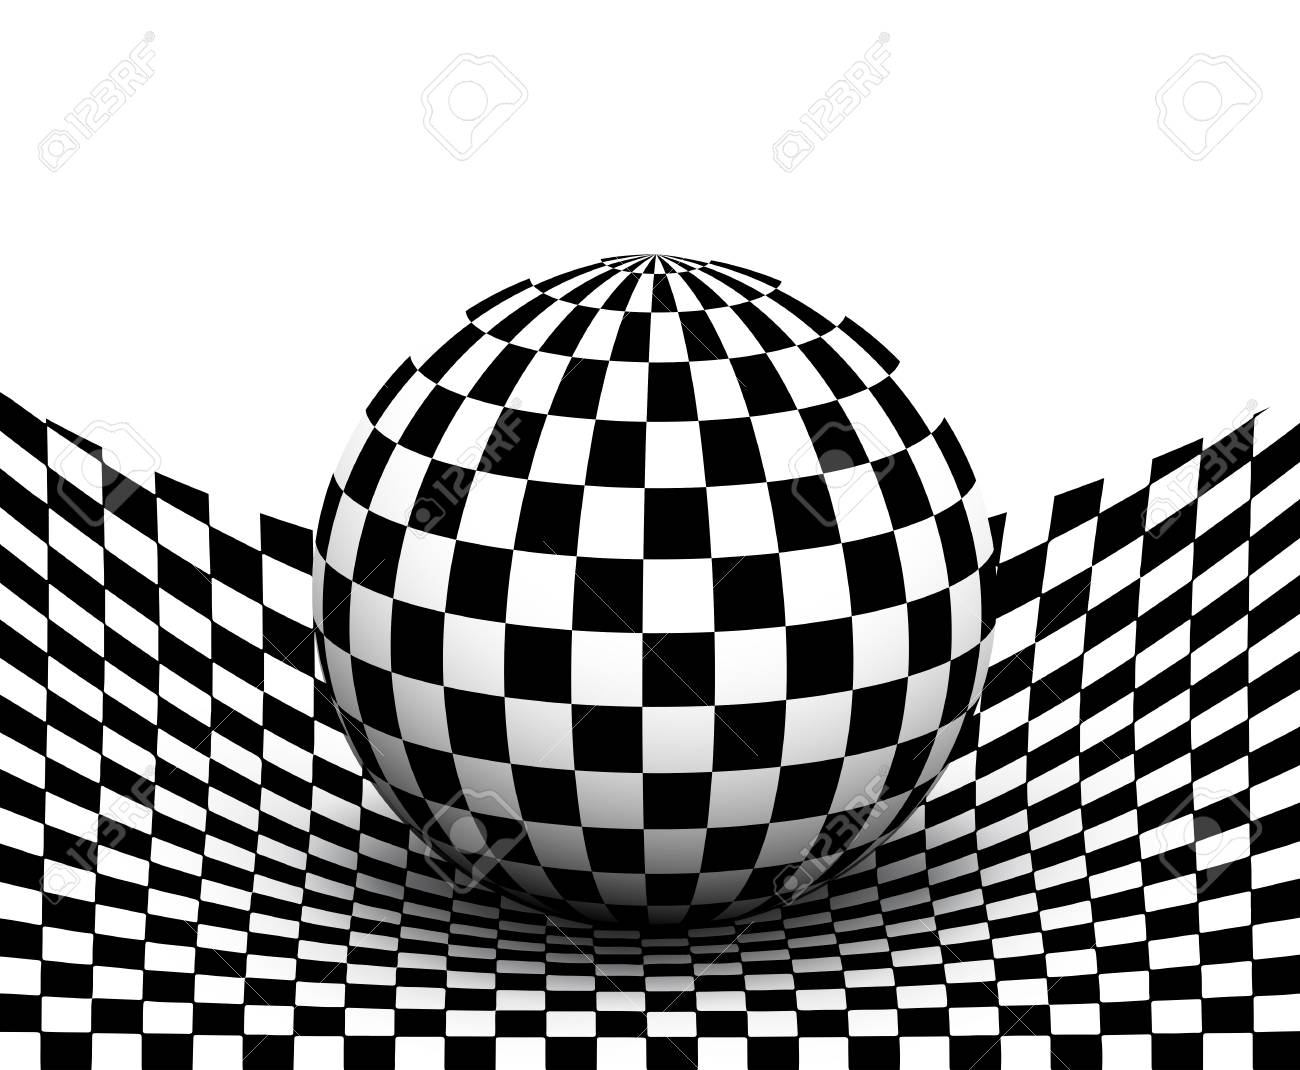 Background 3d black and white checkered distorted space with sphere inside vector illustration stock